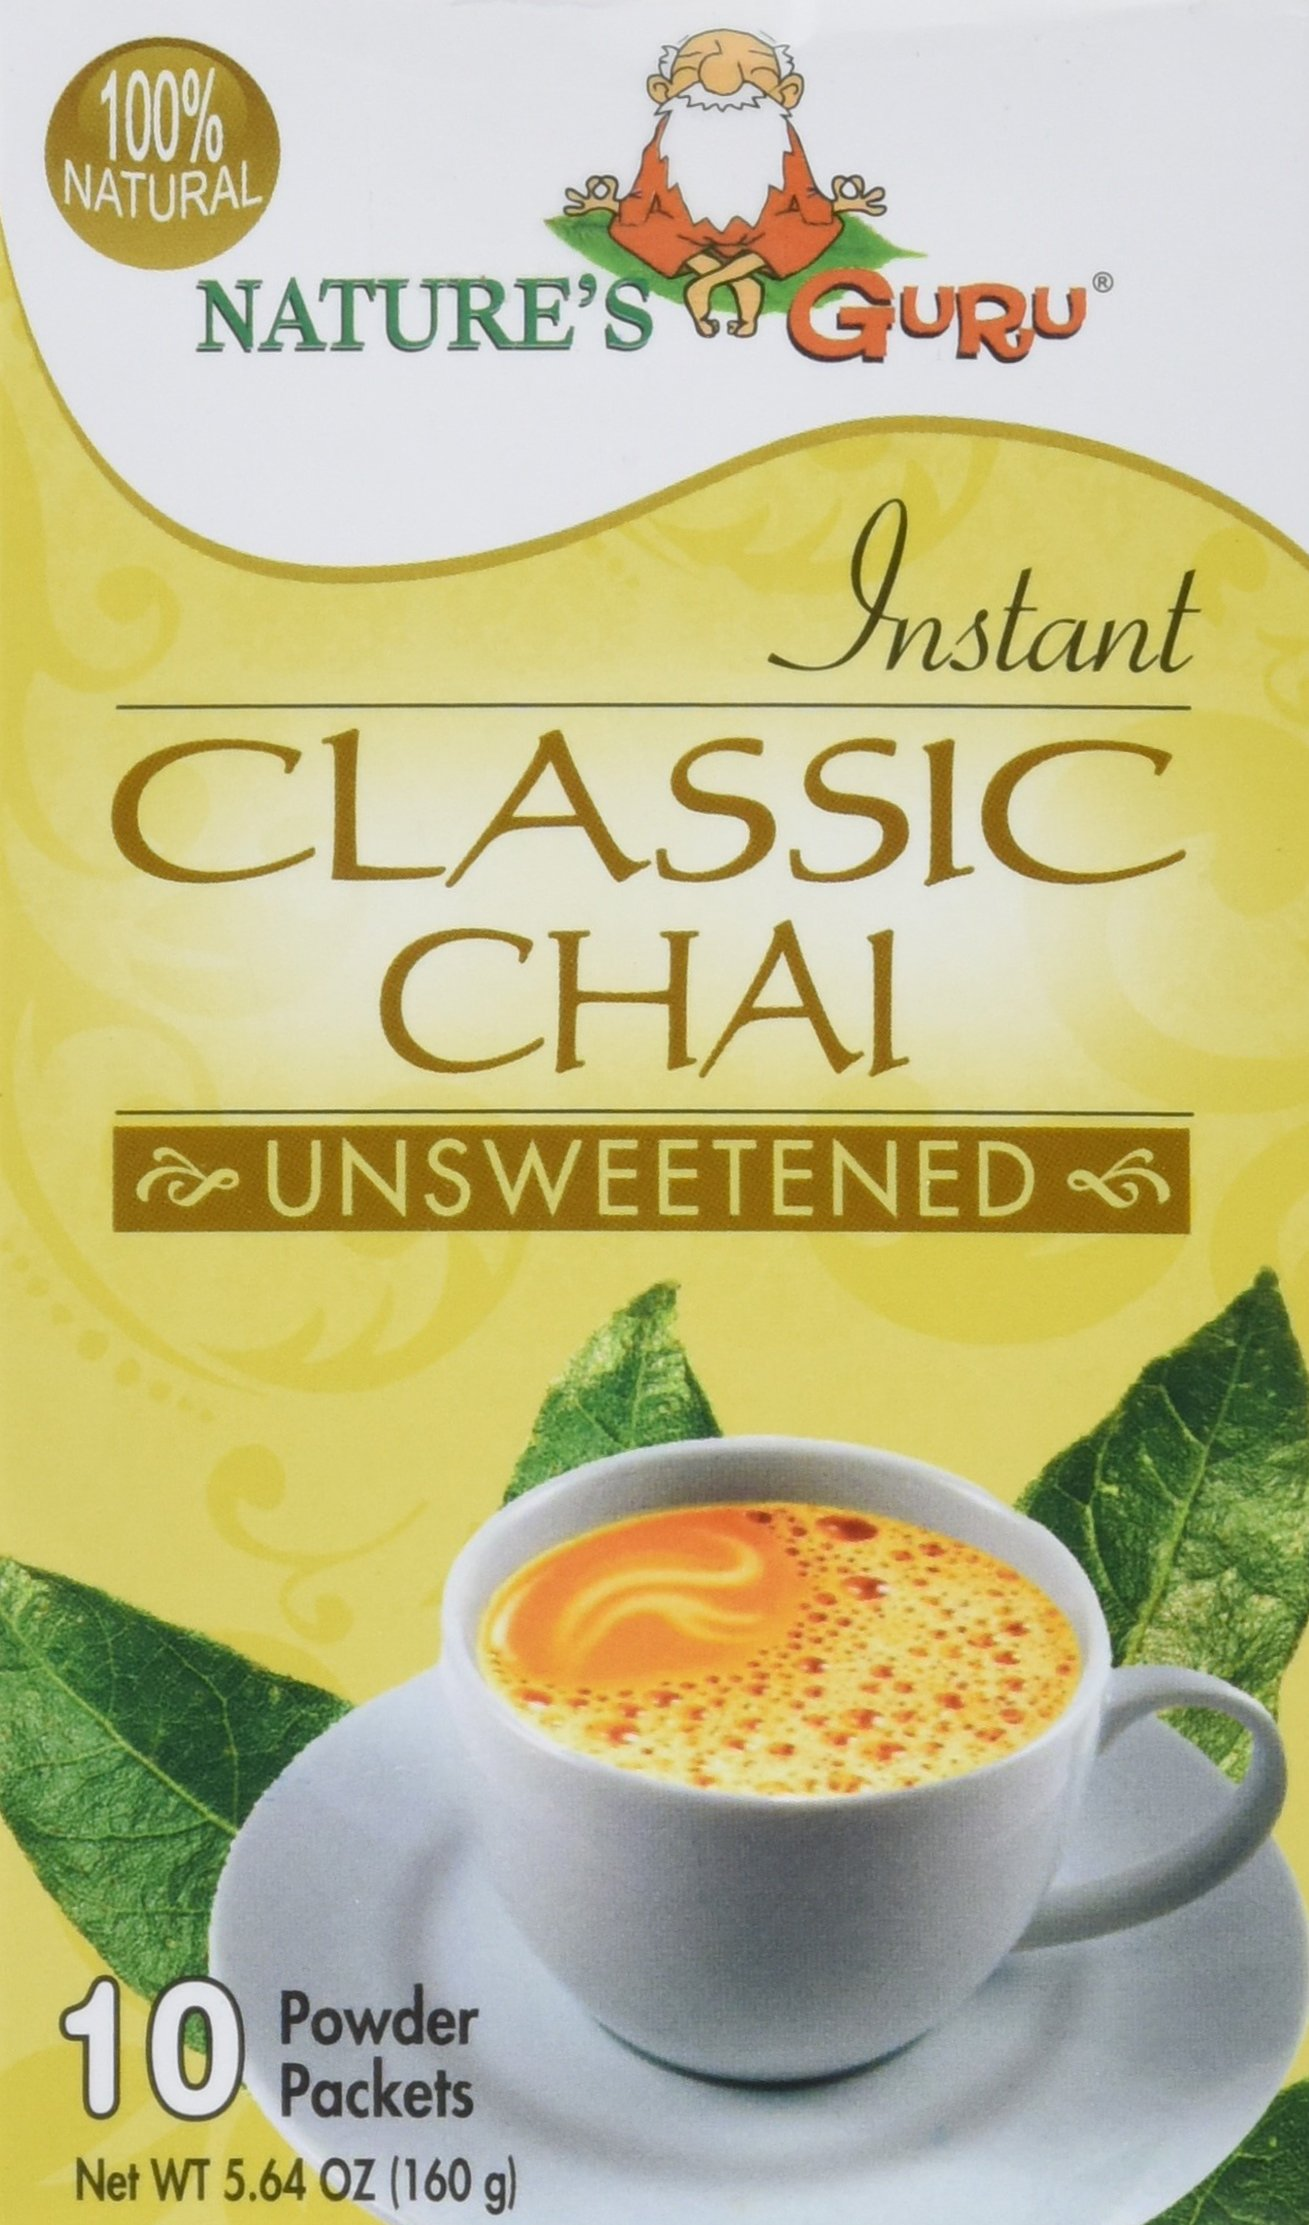 Nature's Guru Instant Classic Chai, Unsweetened, 10-Count (Pack of 1), Convenient On-the-Go Instant Hot Chai Mix in Single Serve Packets, All Natural, Just Add Hot Water and Stir